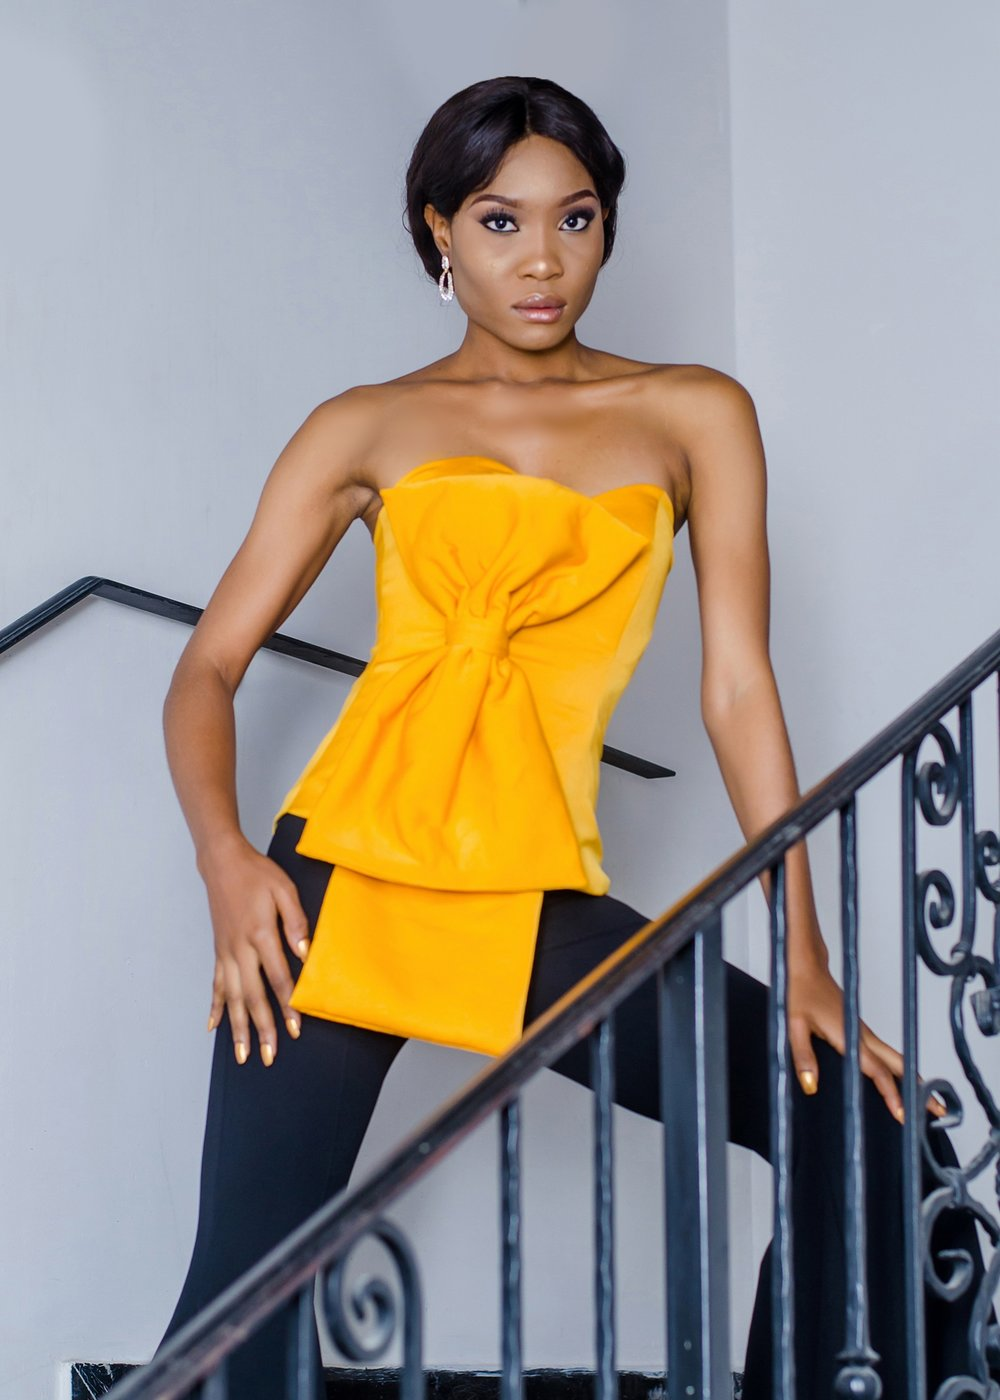 Zurikgirl-mustard+-extreme-bow-blouse-tube-top+6.jpg